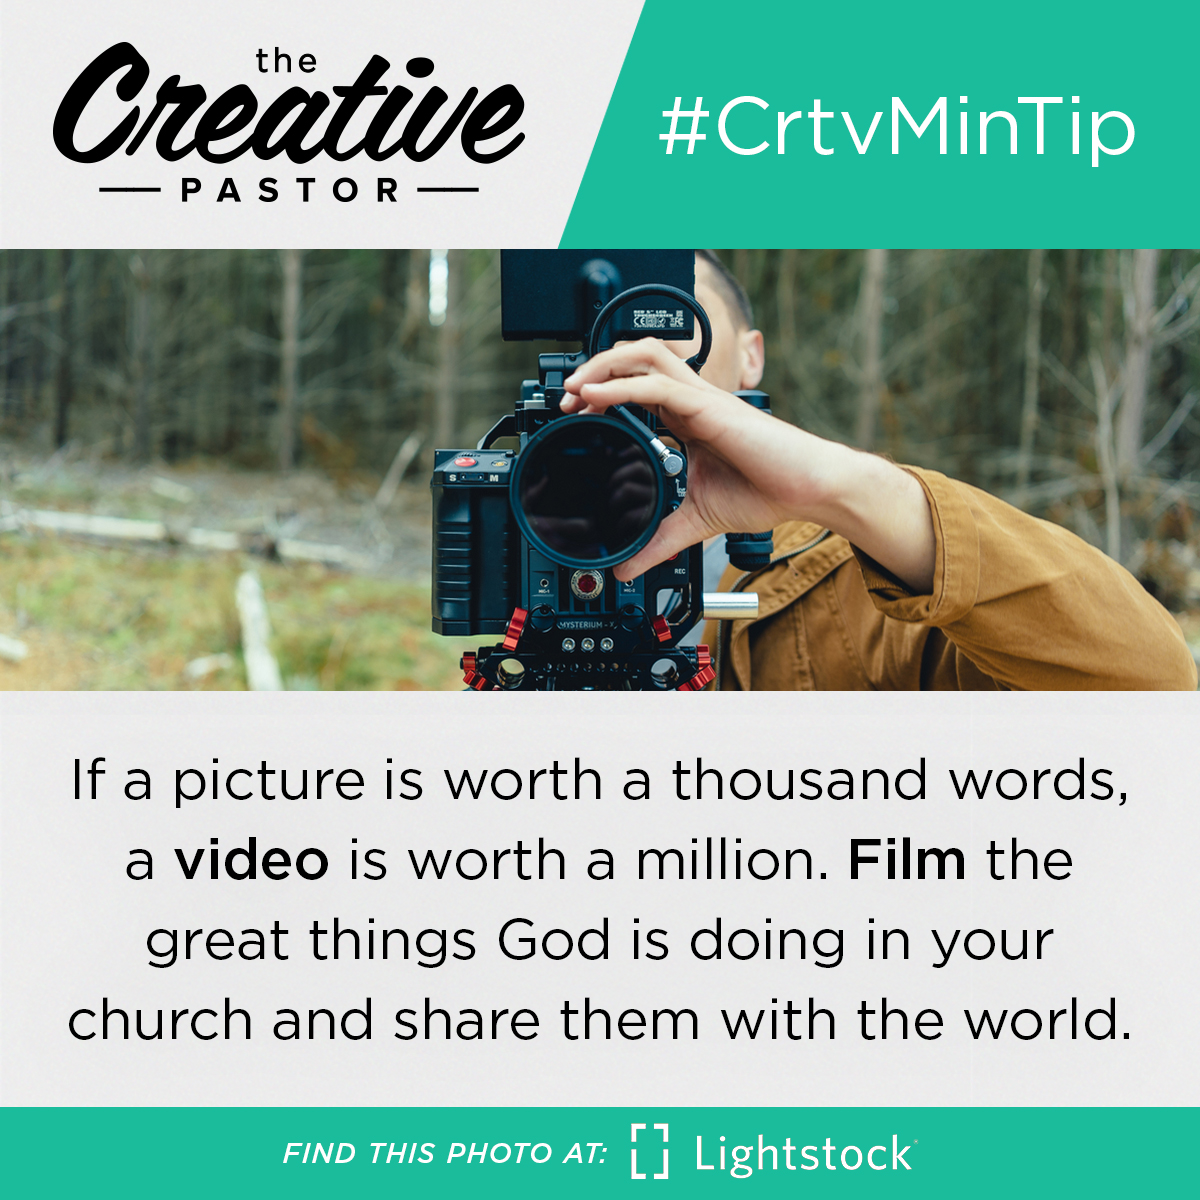 If a picture is worth a thousand words, a video is worth a million. Film the great things God is doing in your church and share them with the world.